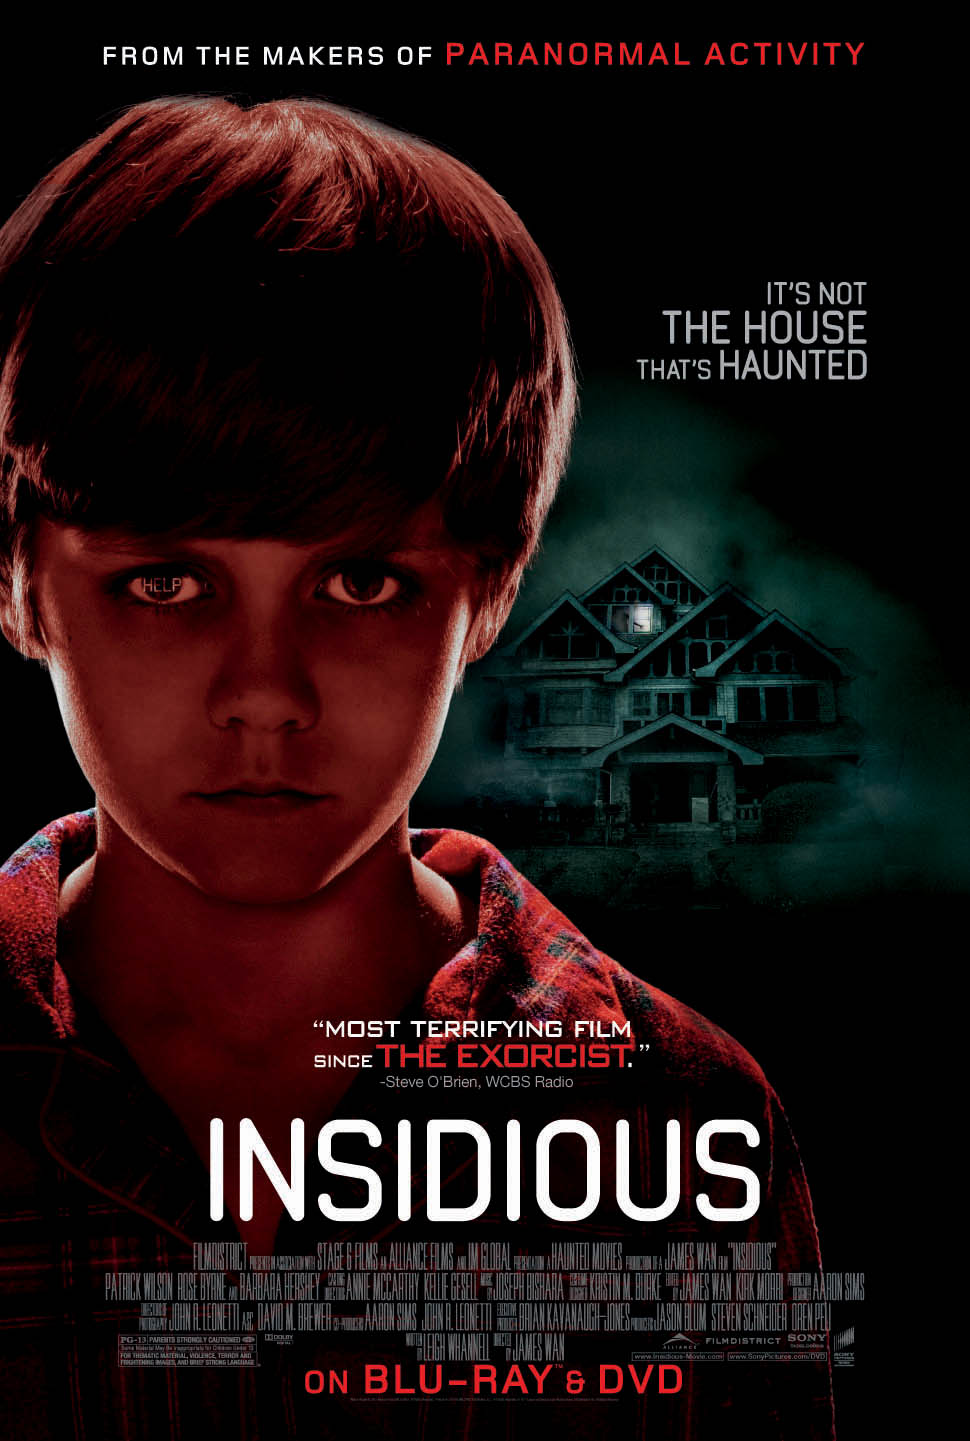 Insidious Wallpapers Movie Hq Insidious Pictures 4k Wallpapers 2019